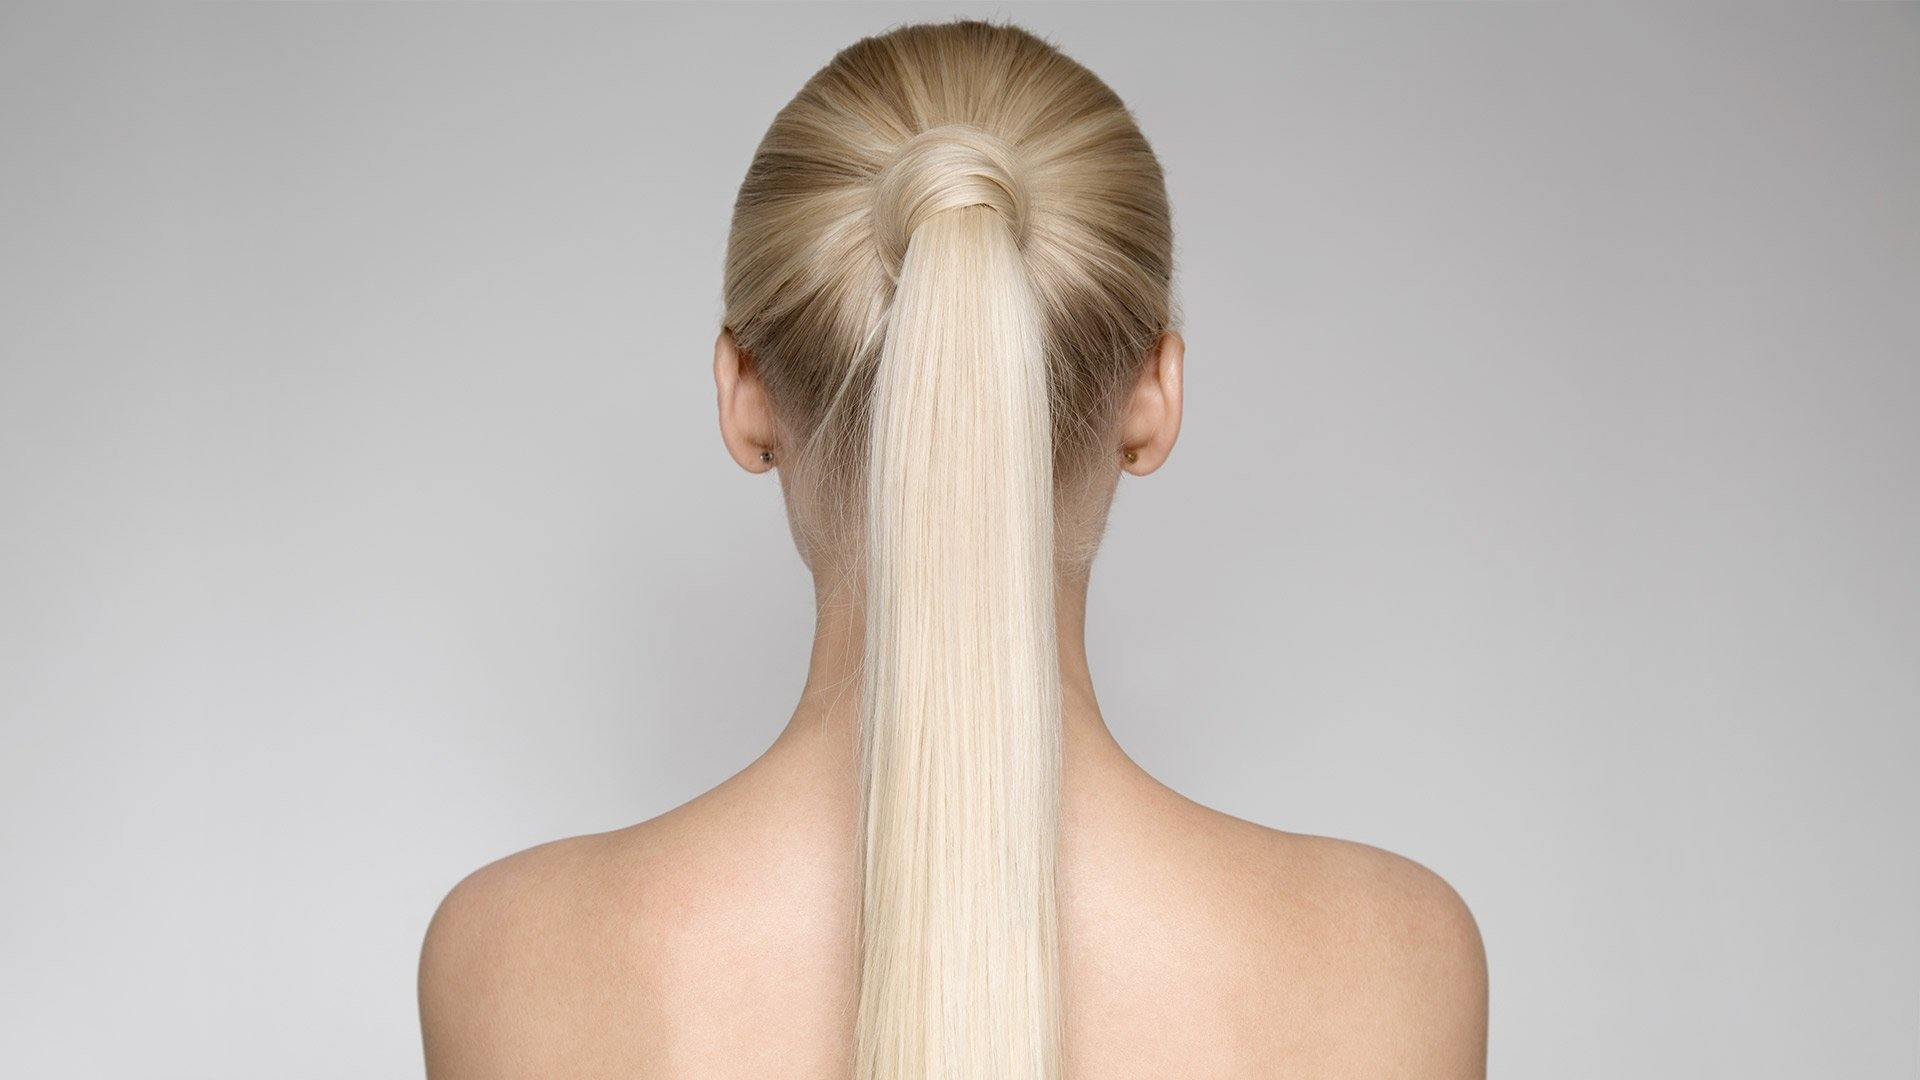 Loreal-Paris-Article-How-to-Do-a-Ponytail-That-Looks-Perfect-Every-Time-D